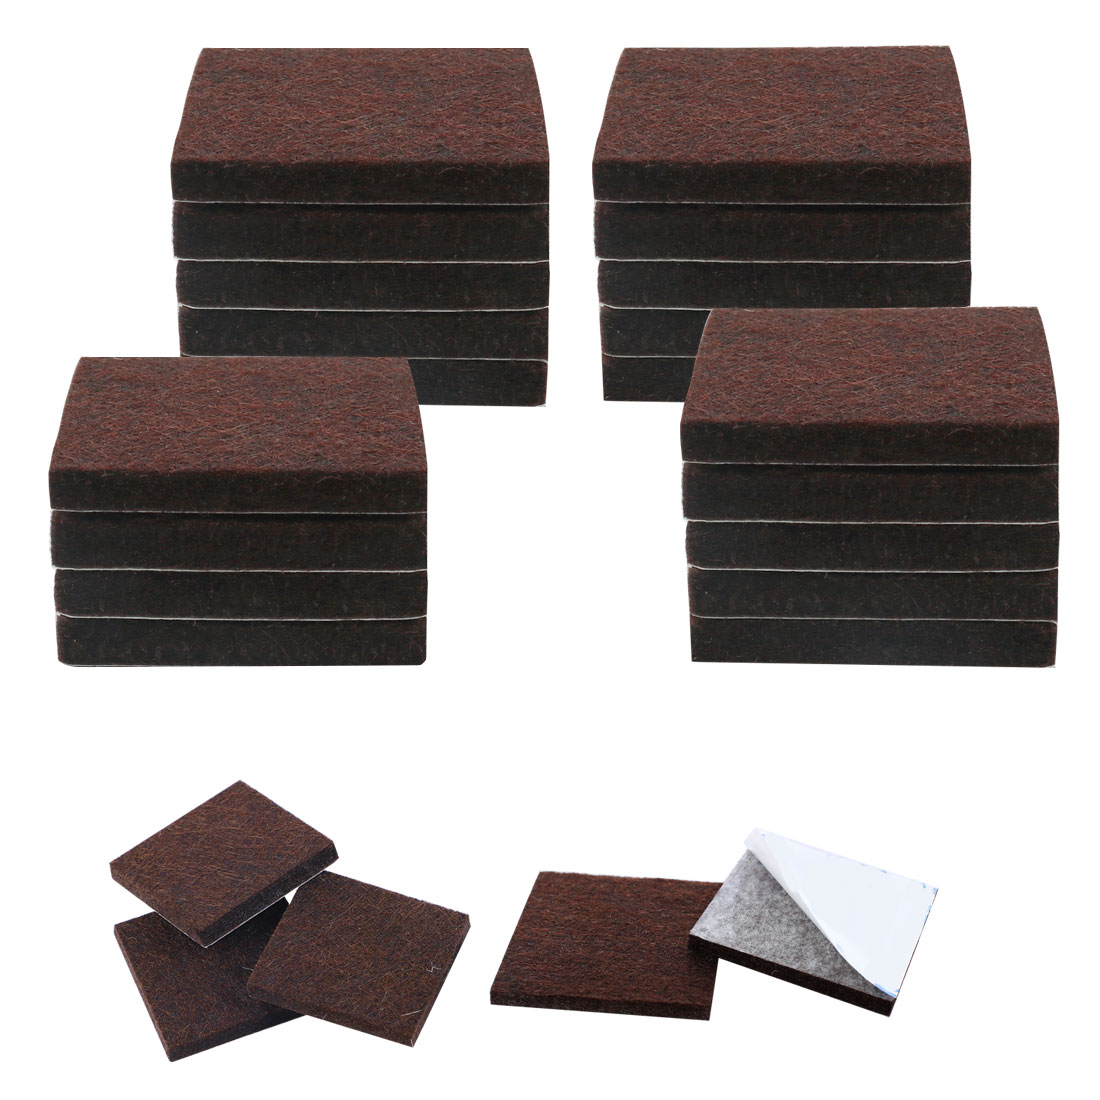 Felt Chair Pads 24pcs Felt Furniture Pads Square 3 4 Quot Floor Protector For